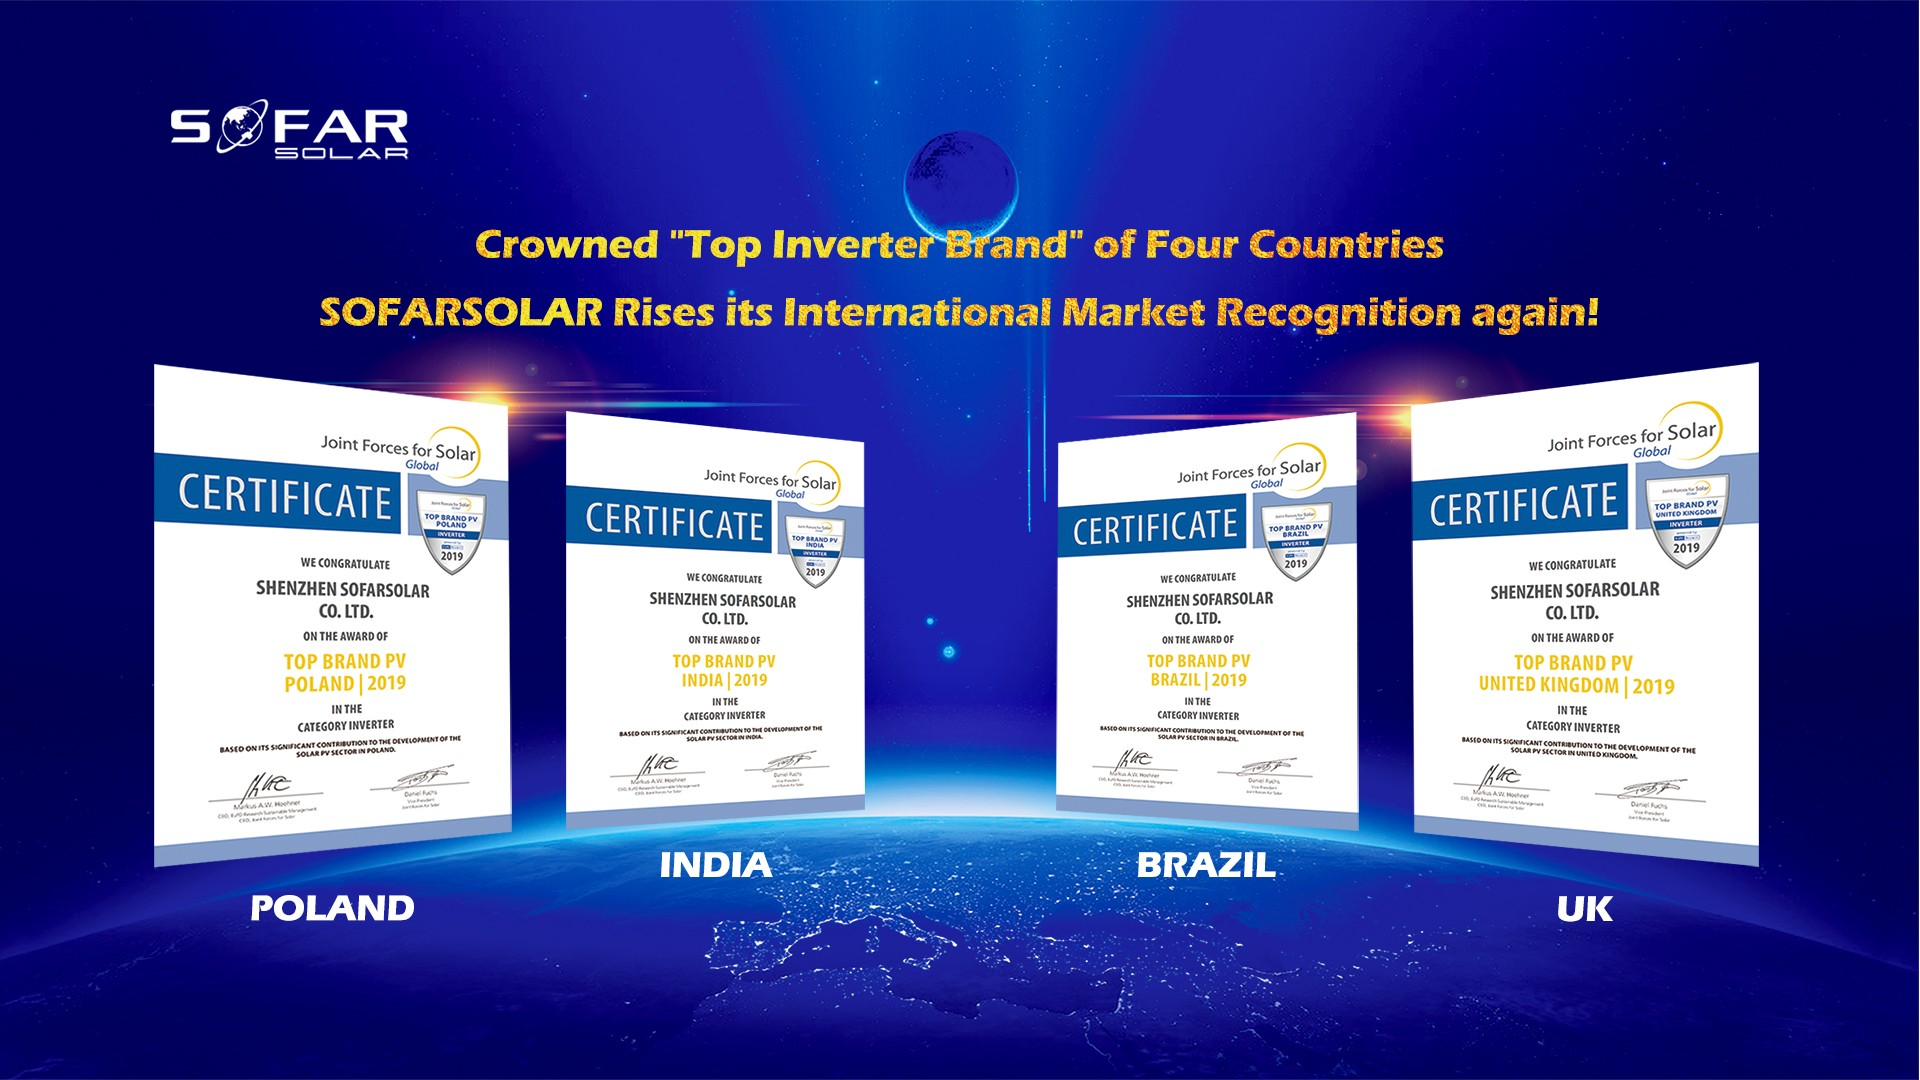 """Crowned """"Top Inverter Brand"""" of Four Countries, SOFARSOLAR Rises its International Market Recognition again!"""